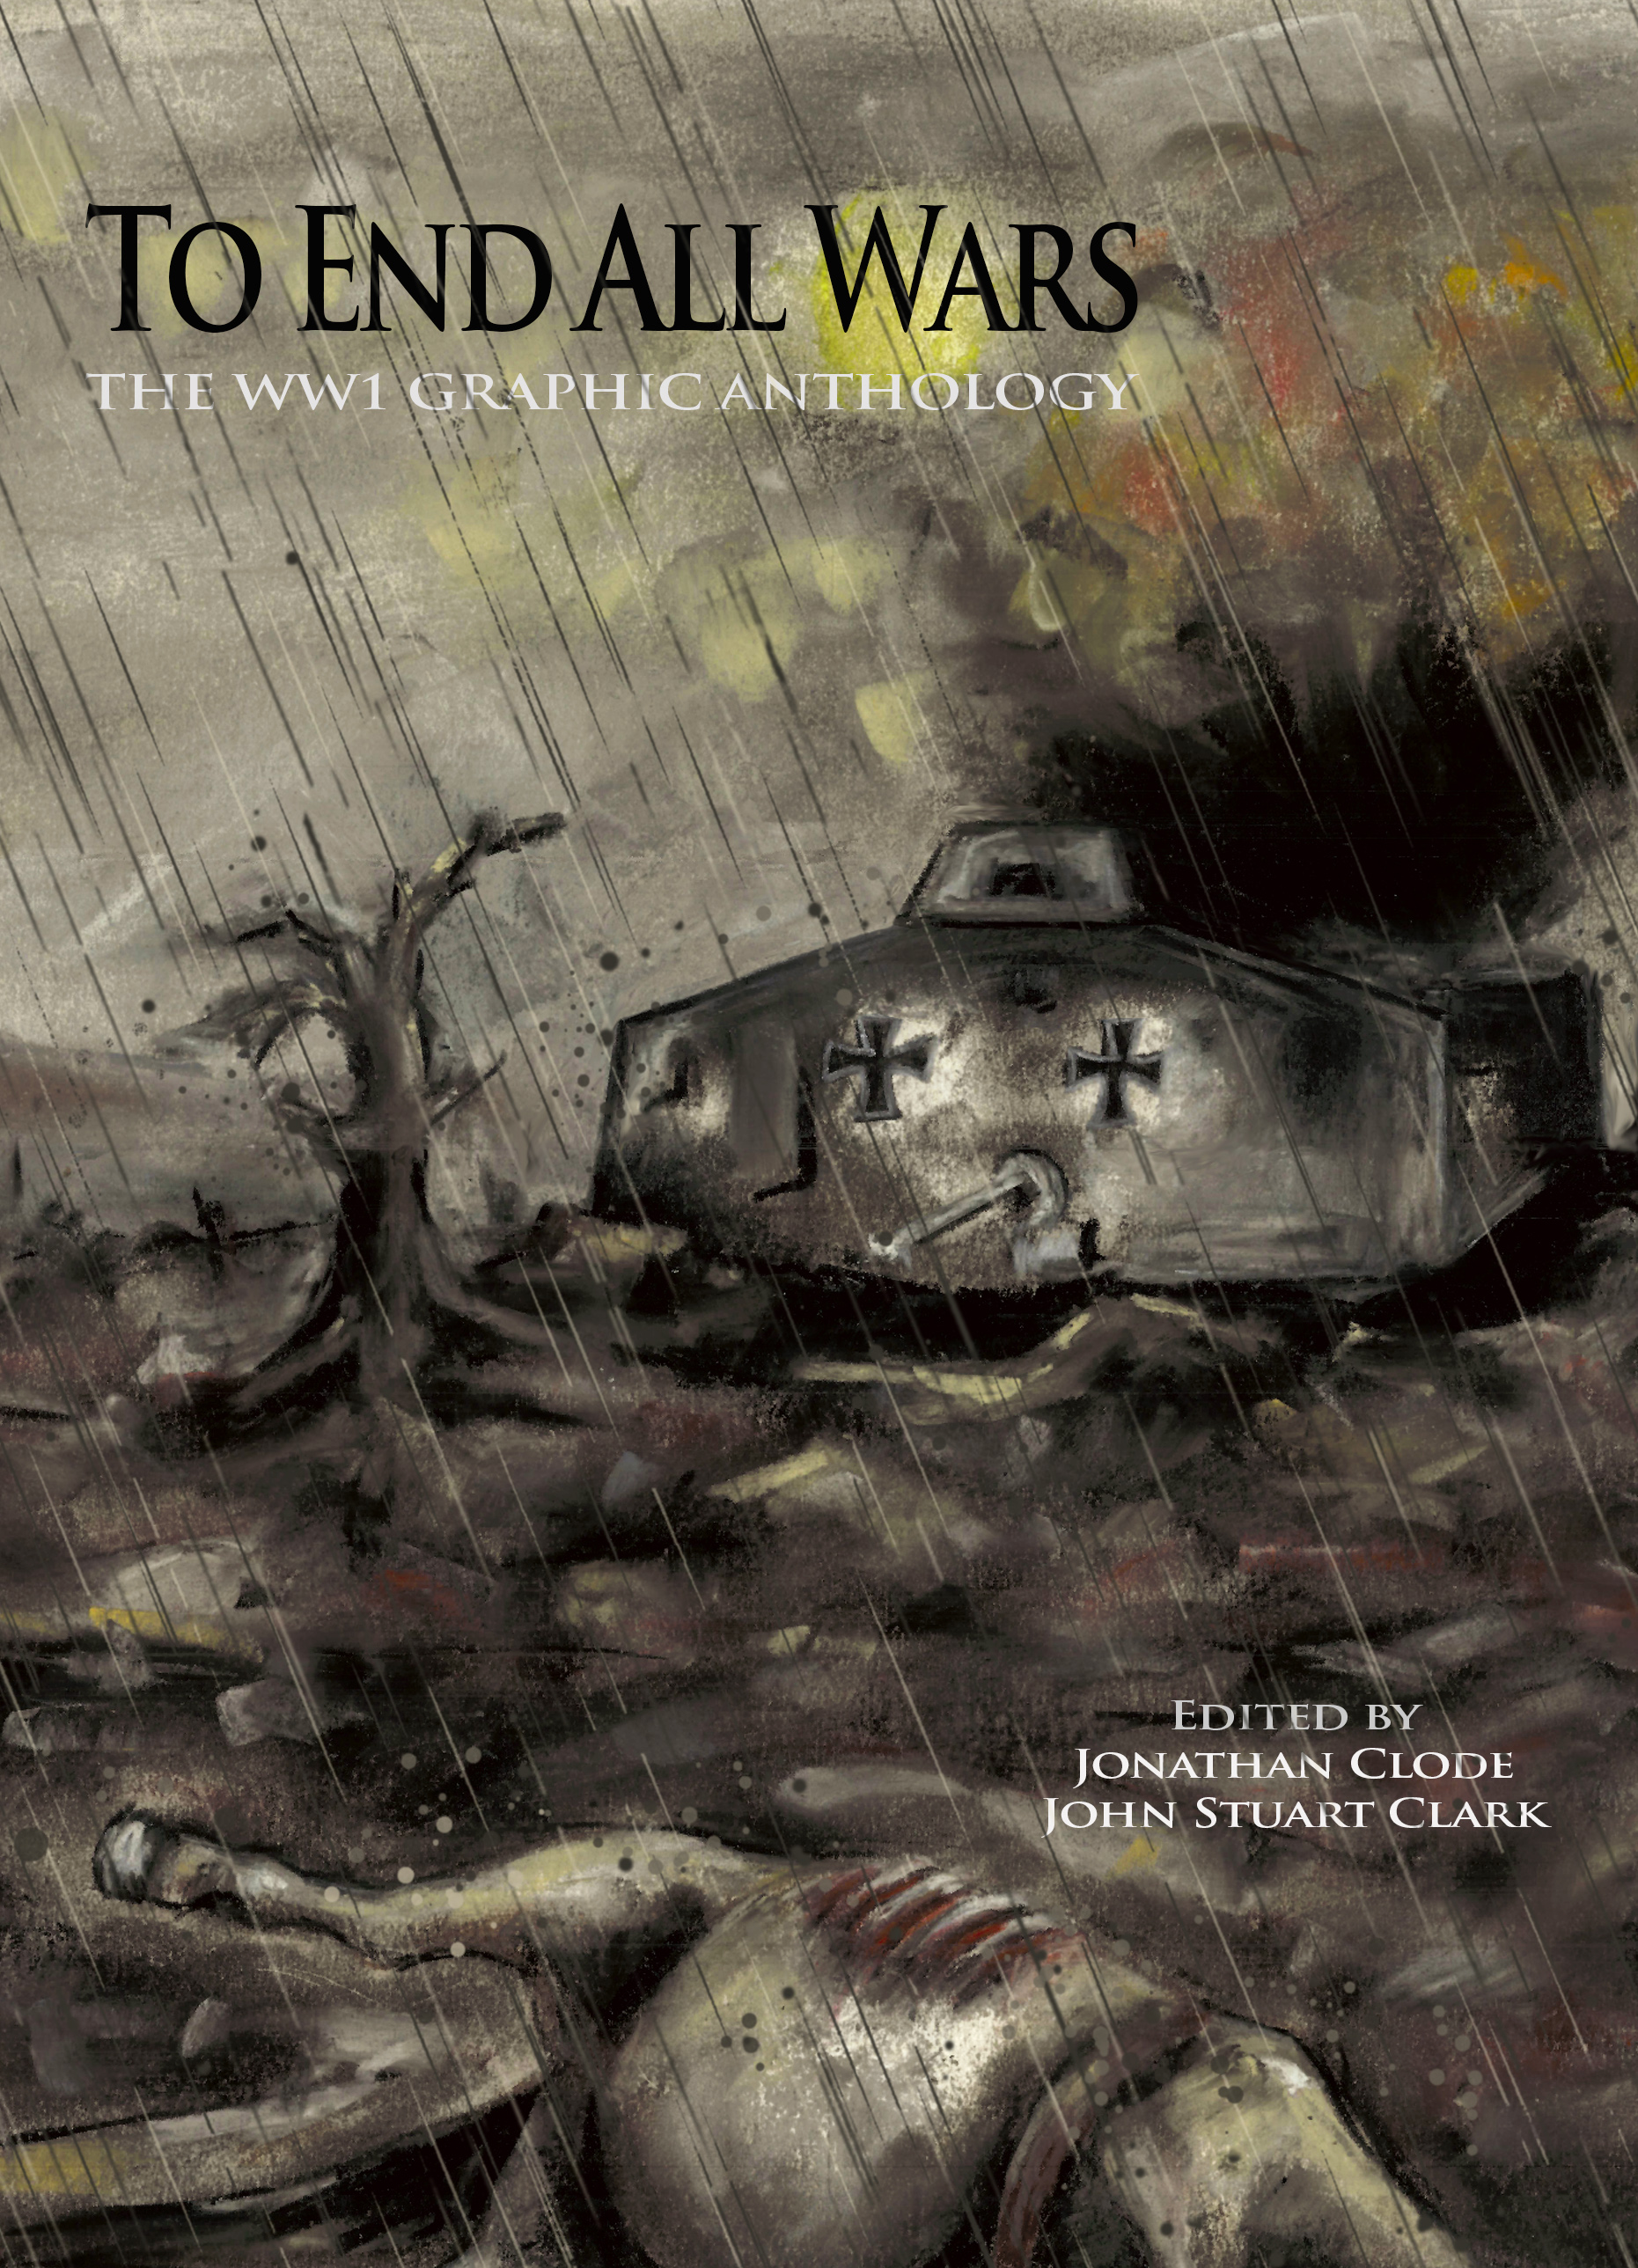 To End All Wars Final Cover by Lizzy Waterhouse